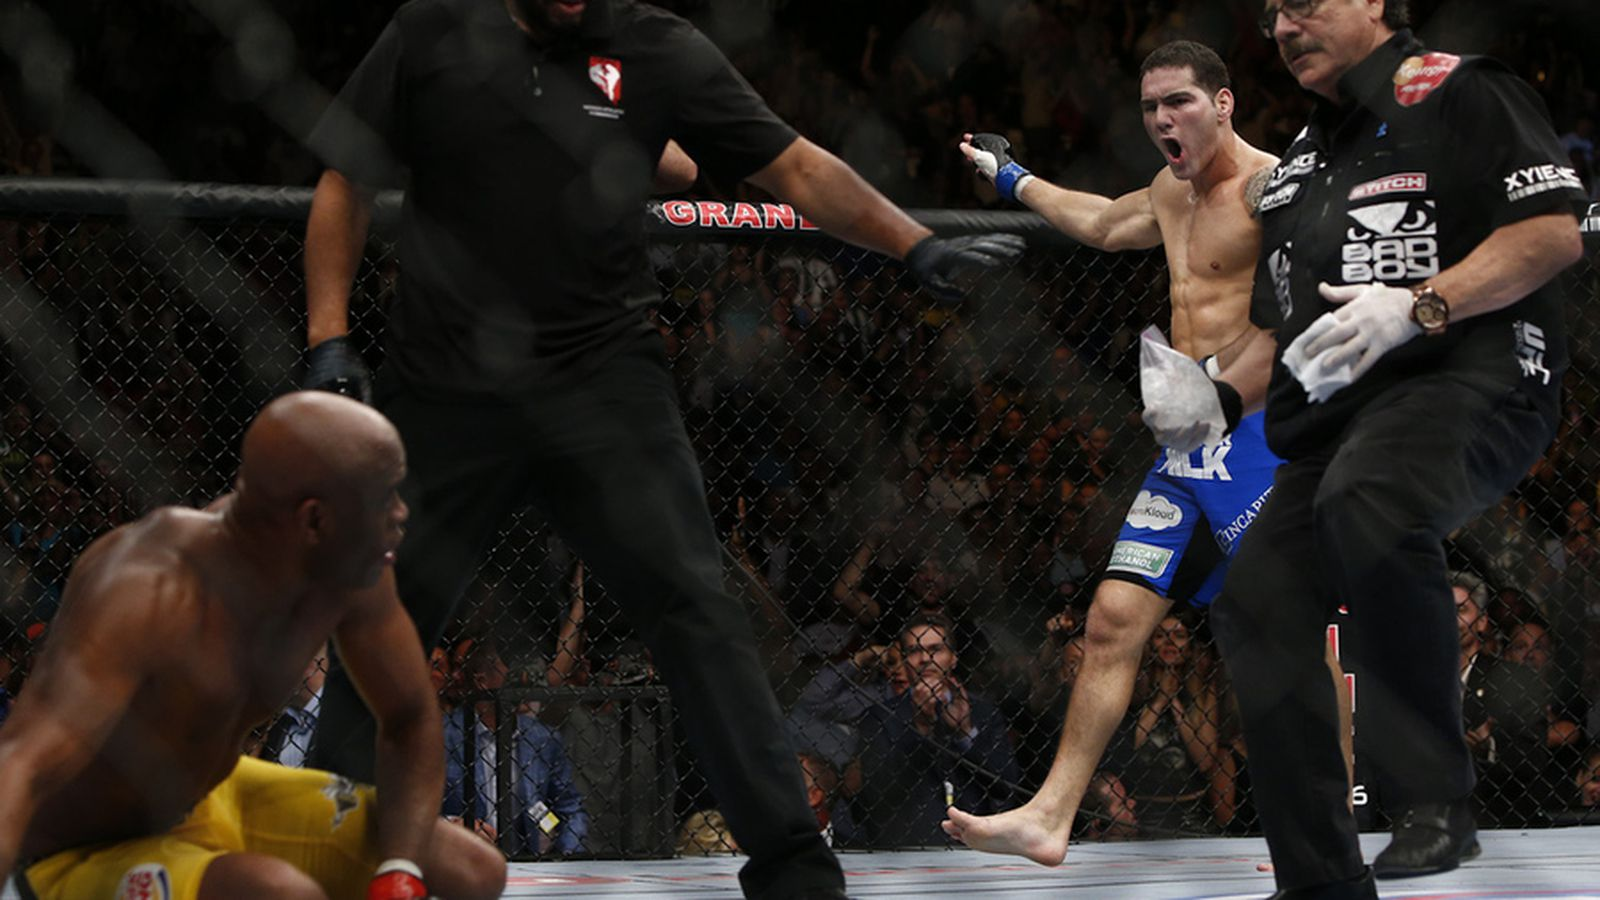 Chris Weidman Wallpaper Chris Weidman Trainer Older